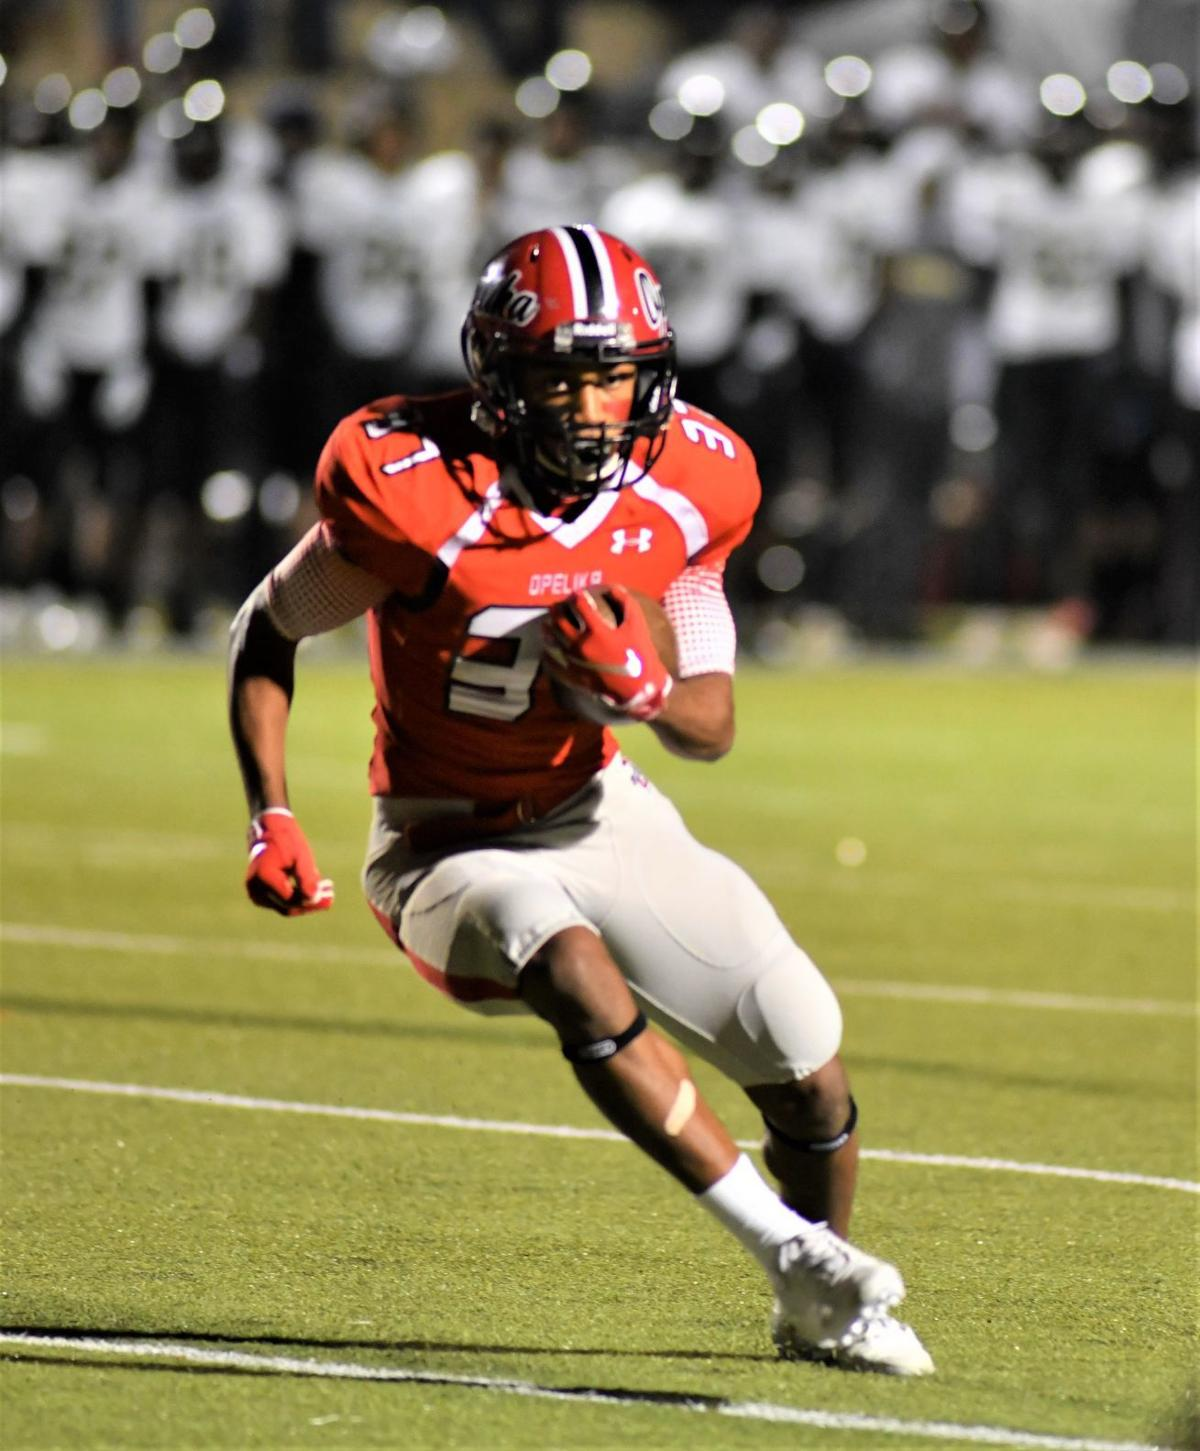 AHSAA TV Network (WOTM) to Broadcast Class 6A Opelika – Spanish Fort Battle in Semifinals